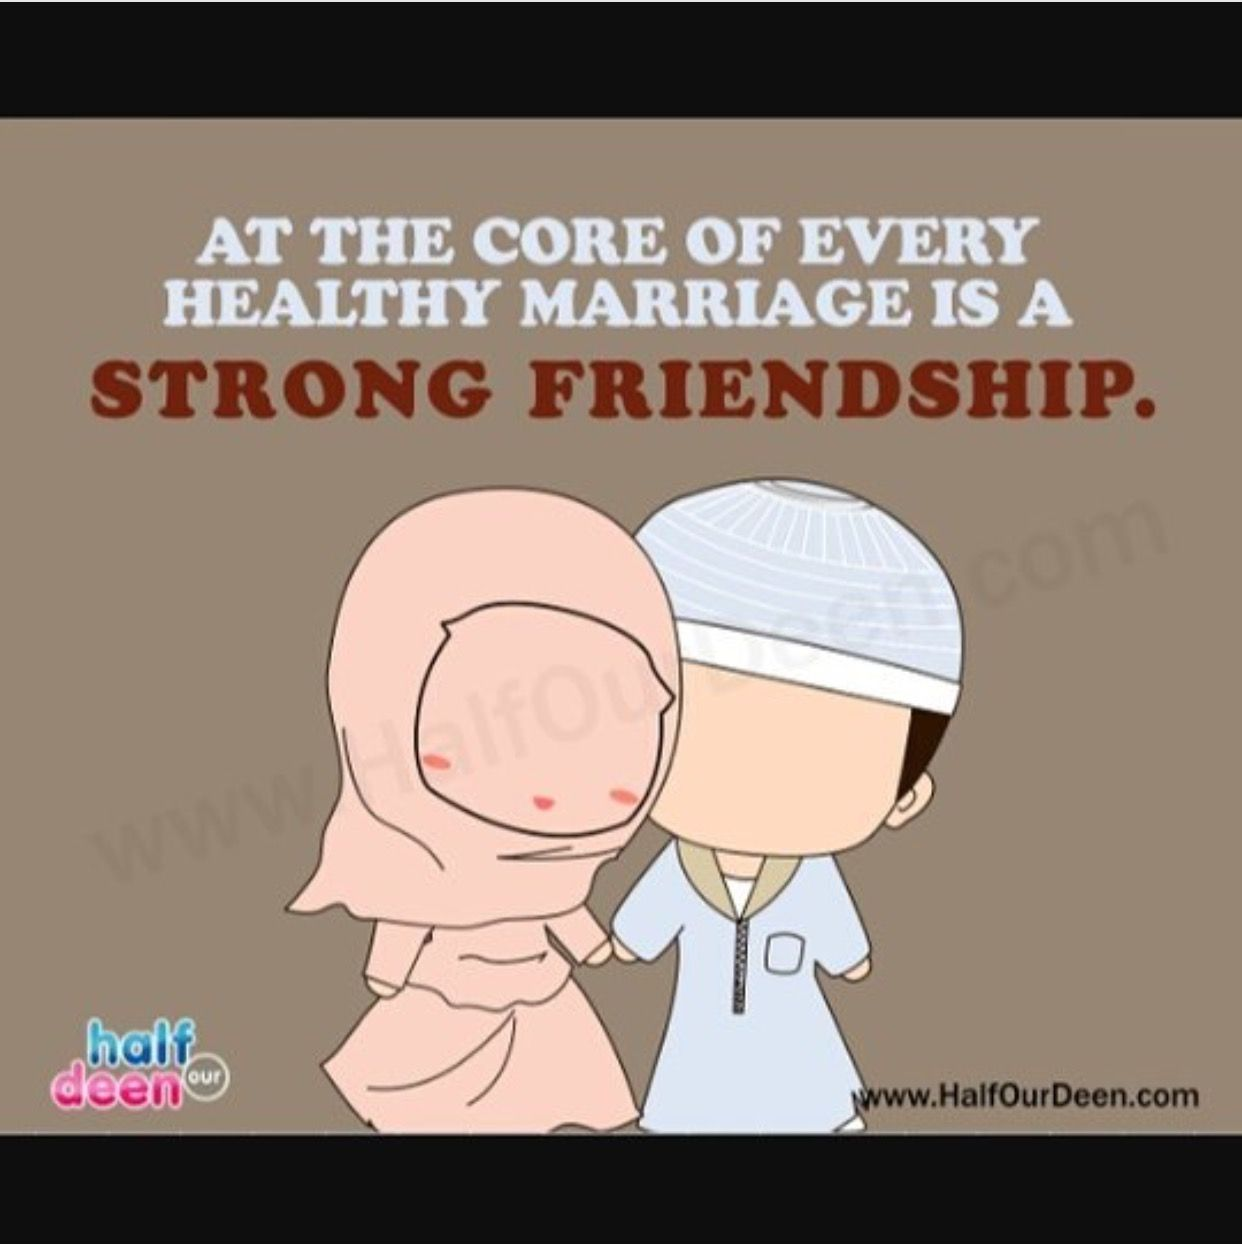 Islamic Quotes About Friendship Friendship Is At The Core Of Every Healthy Relationshipthat's